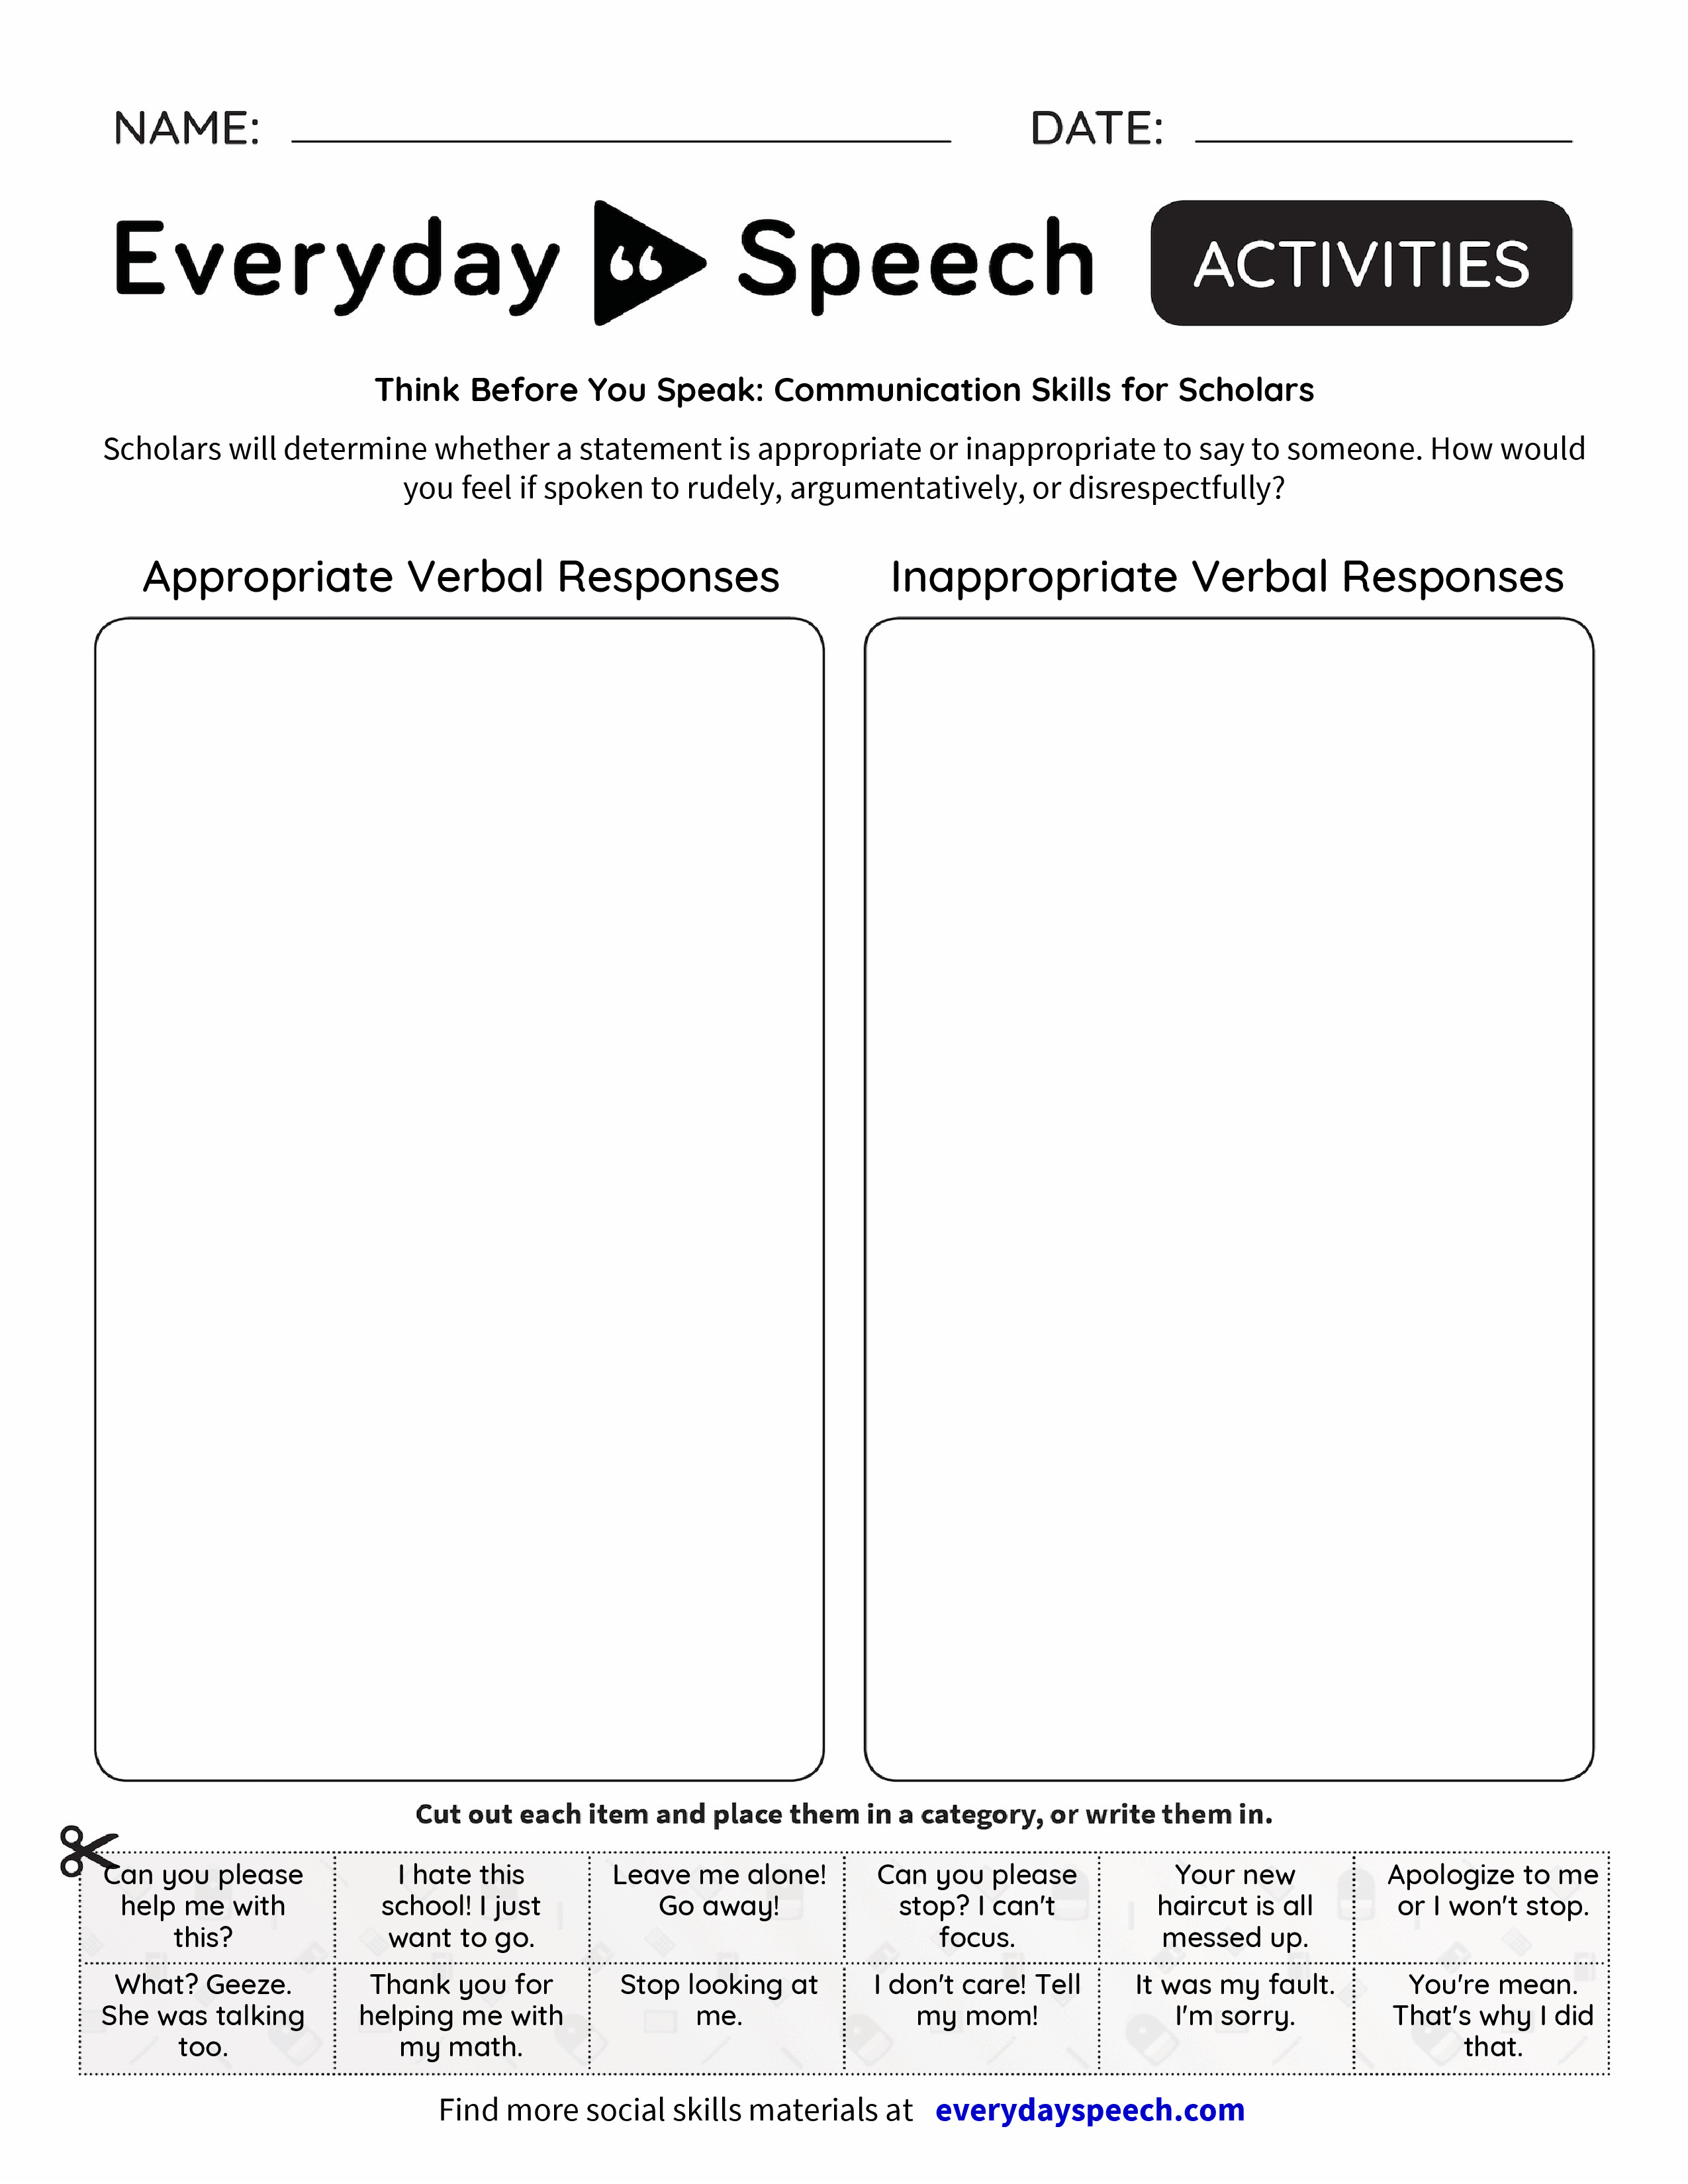 Think Before You Speak Communication Skills for Scholars – Communication Skills Worksheet